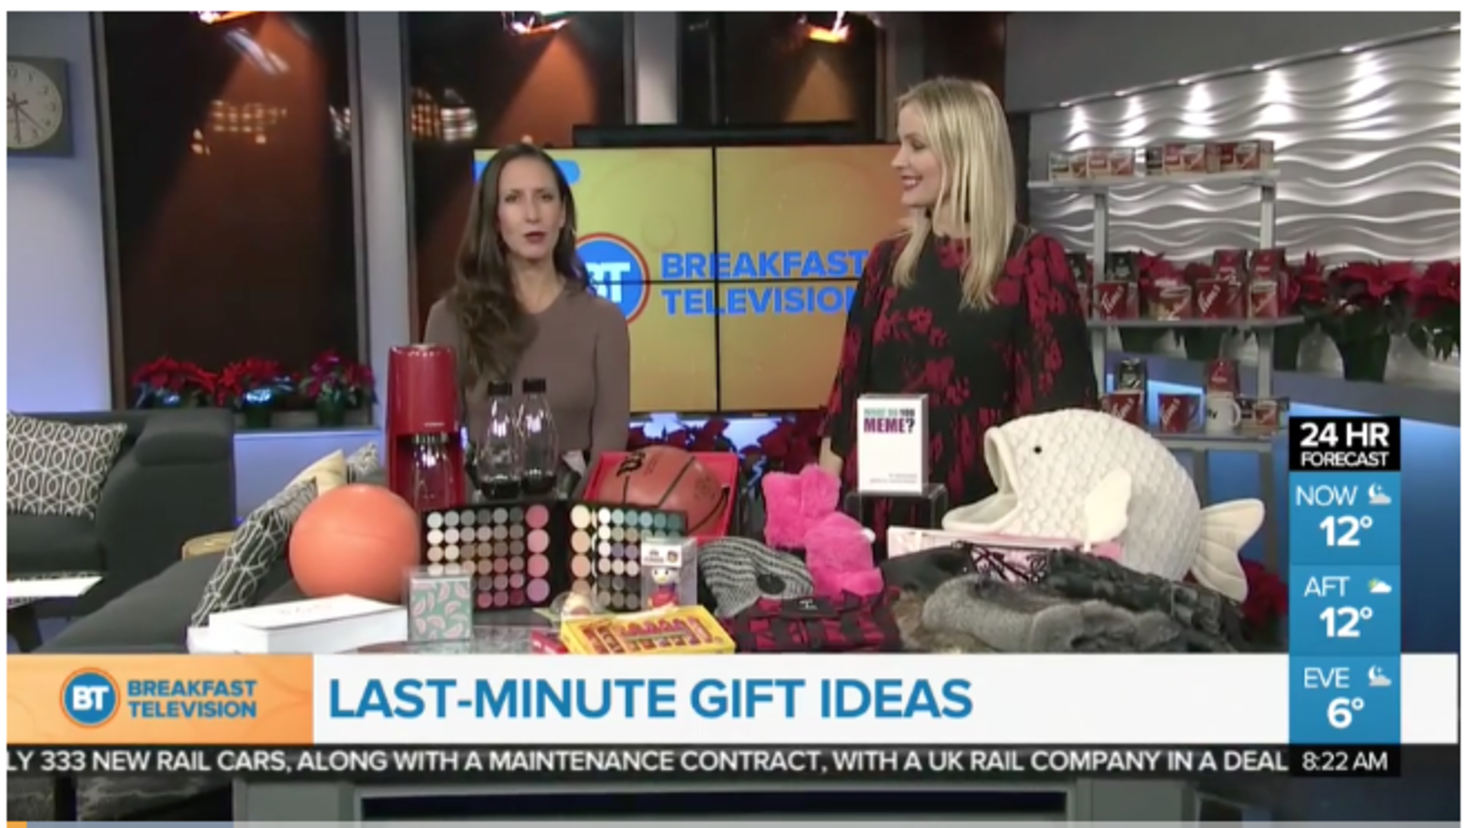 Last Minute Gift Ideas - Breakfast Television Calgary